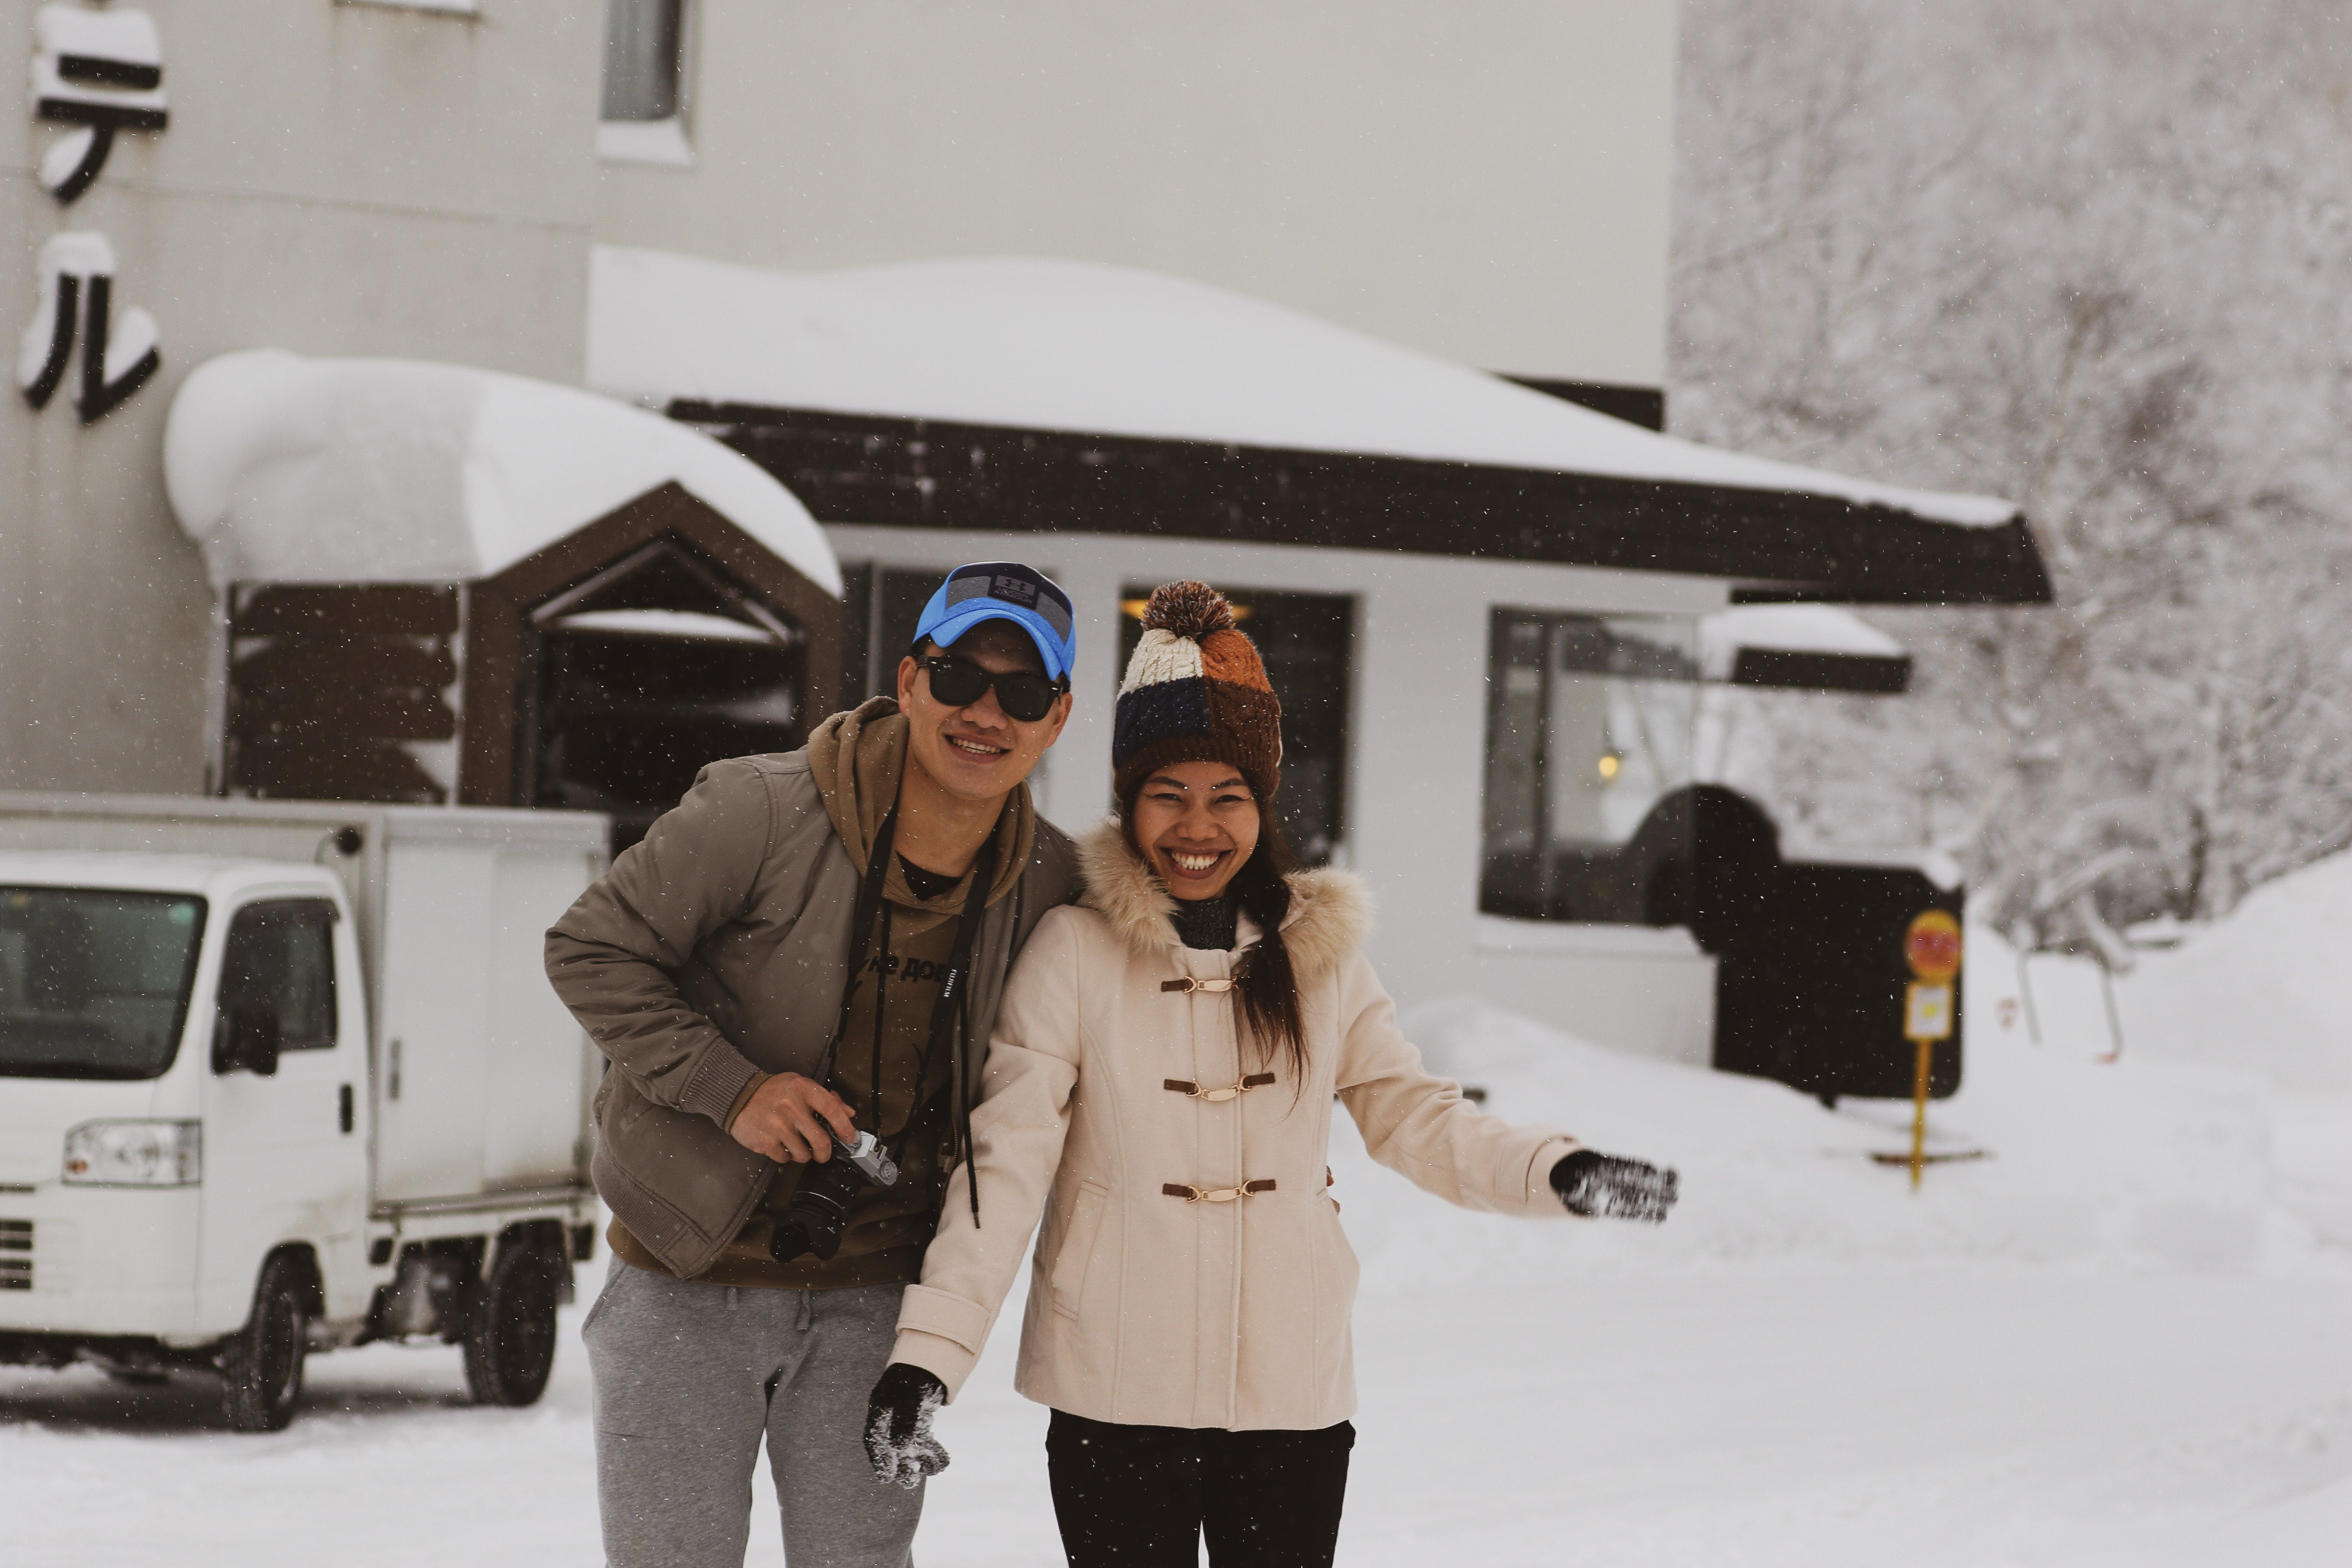 Smiling Man and Woman Standing on Snow Near White Truck Beside White and Brown House